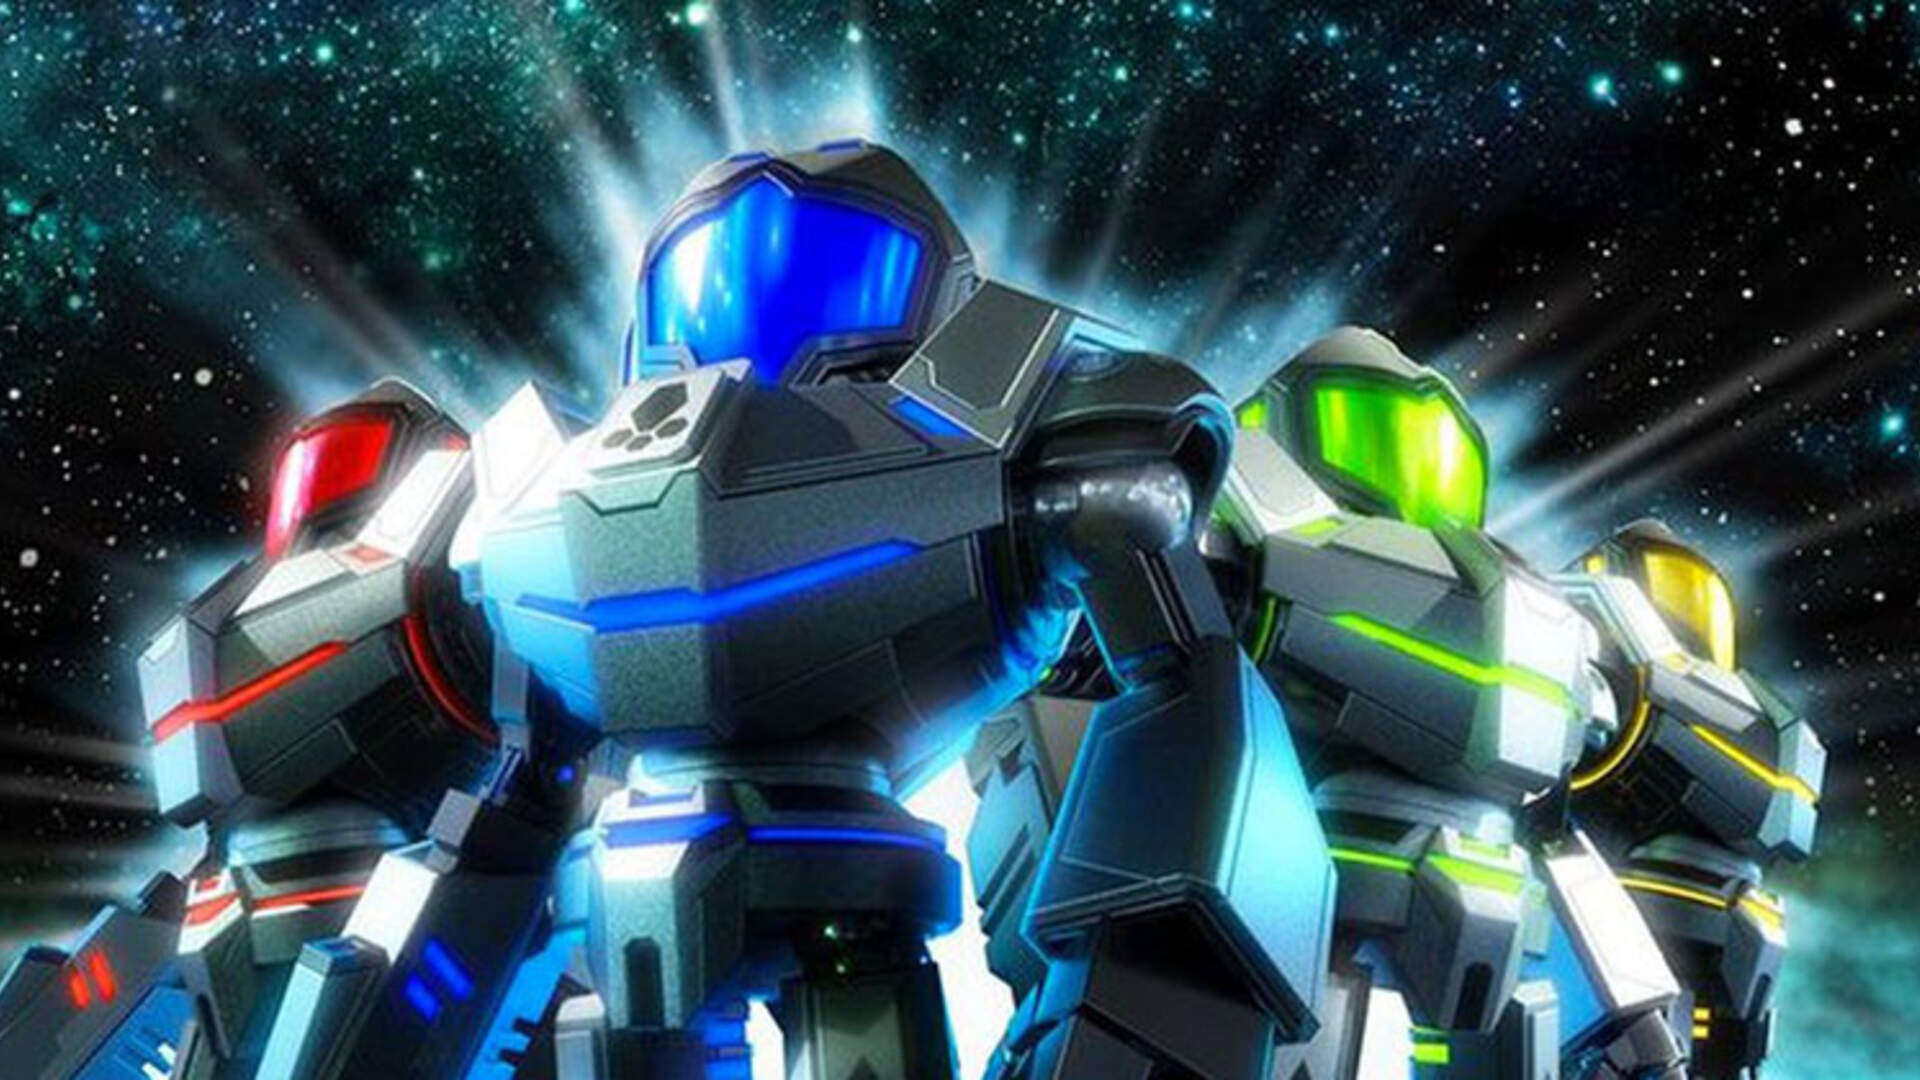 Metroid Prime: Federation Force 3DS Review-in-Progress: Barely Metroid, but Plenty Of Fun